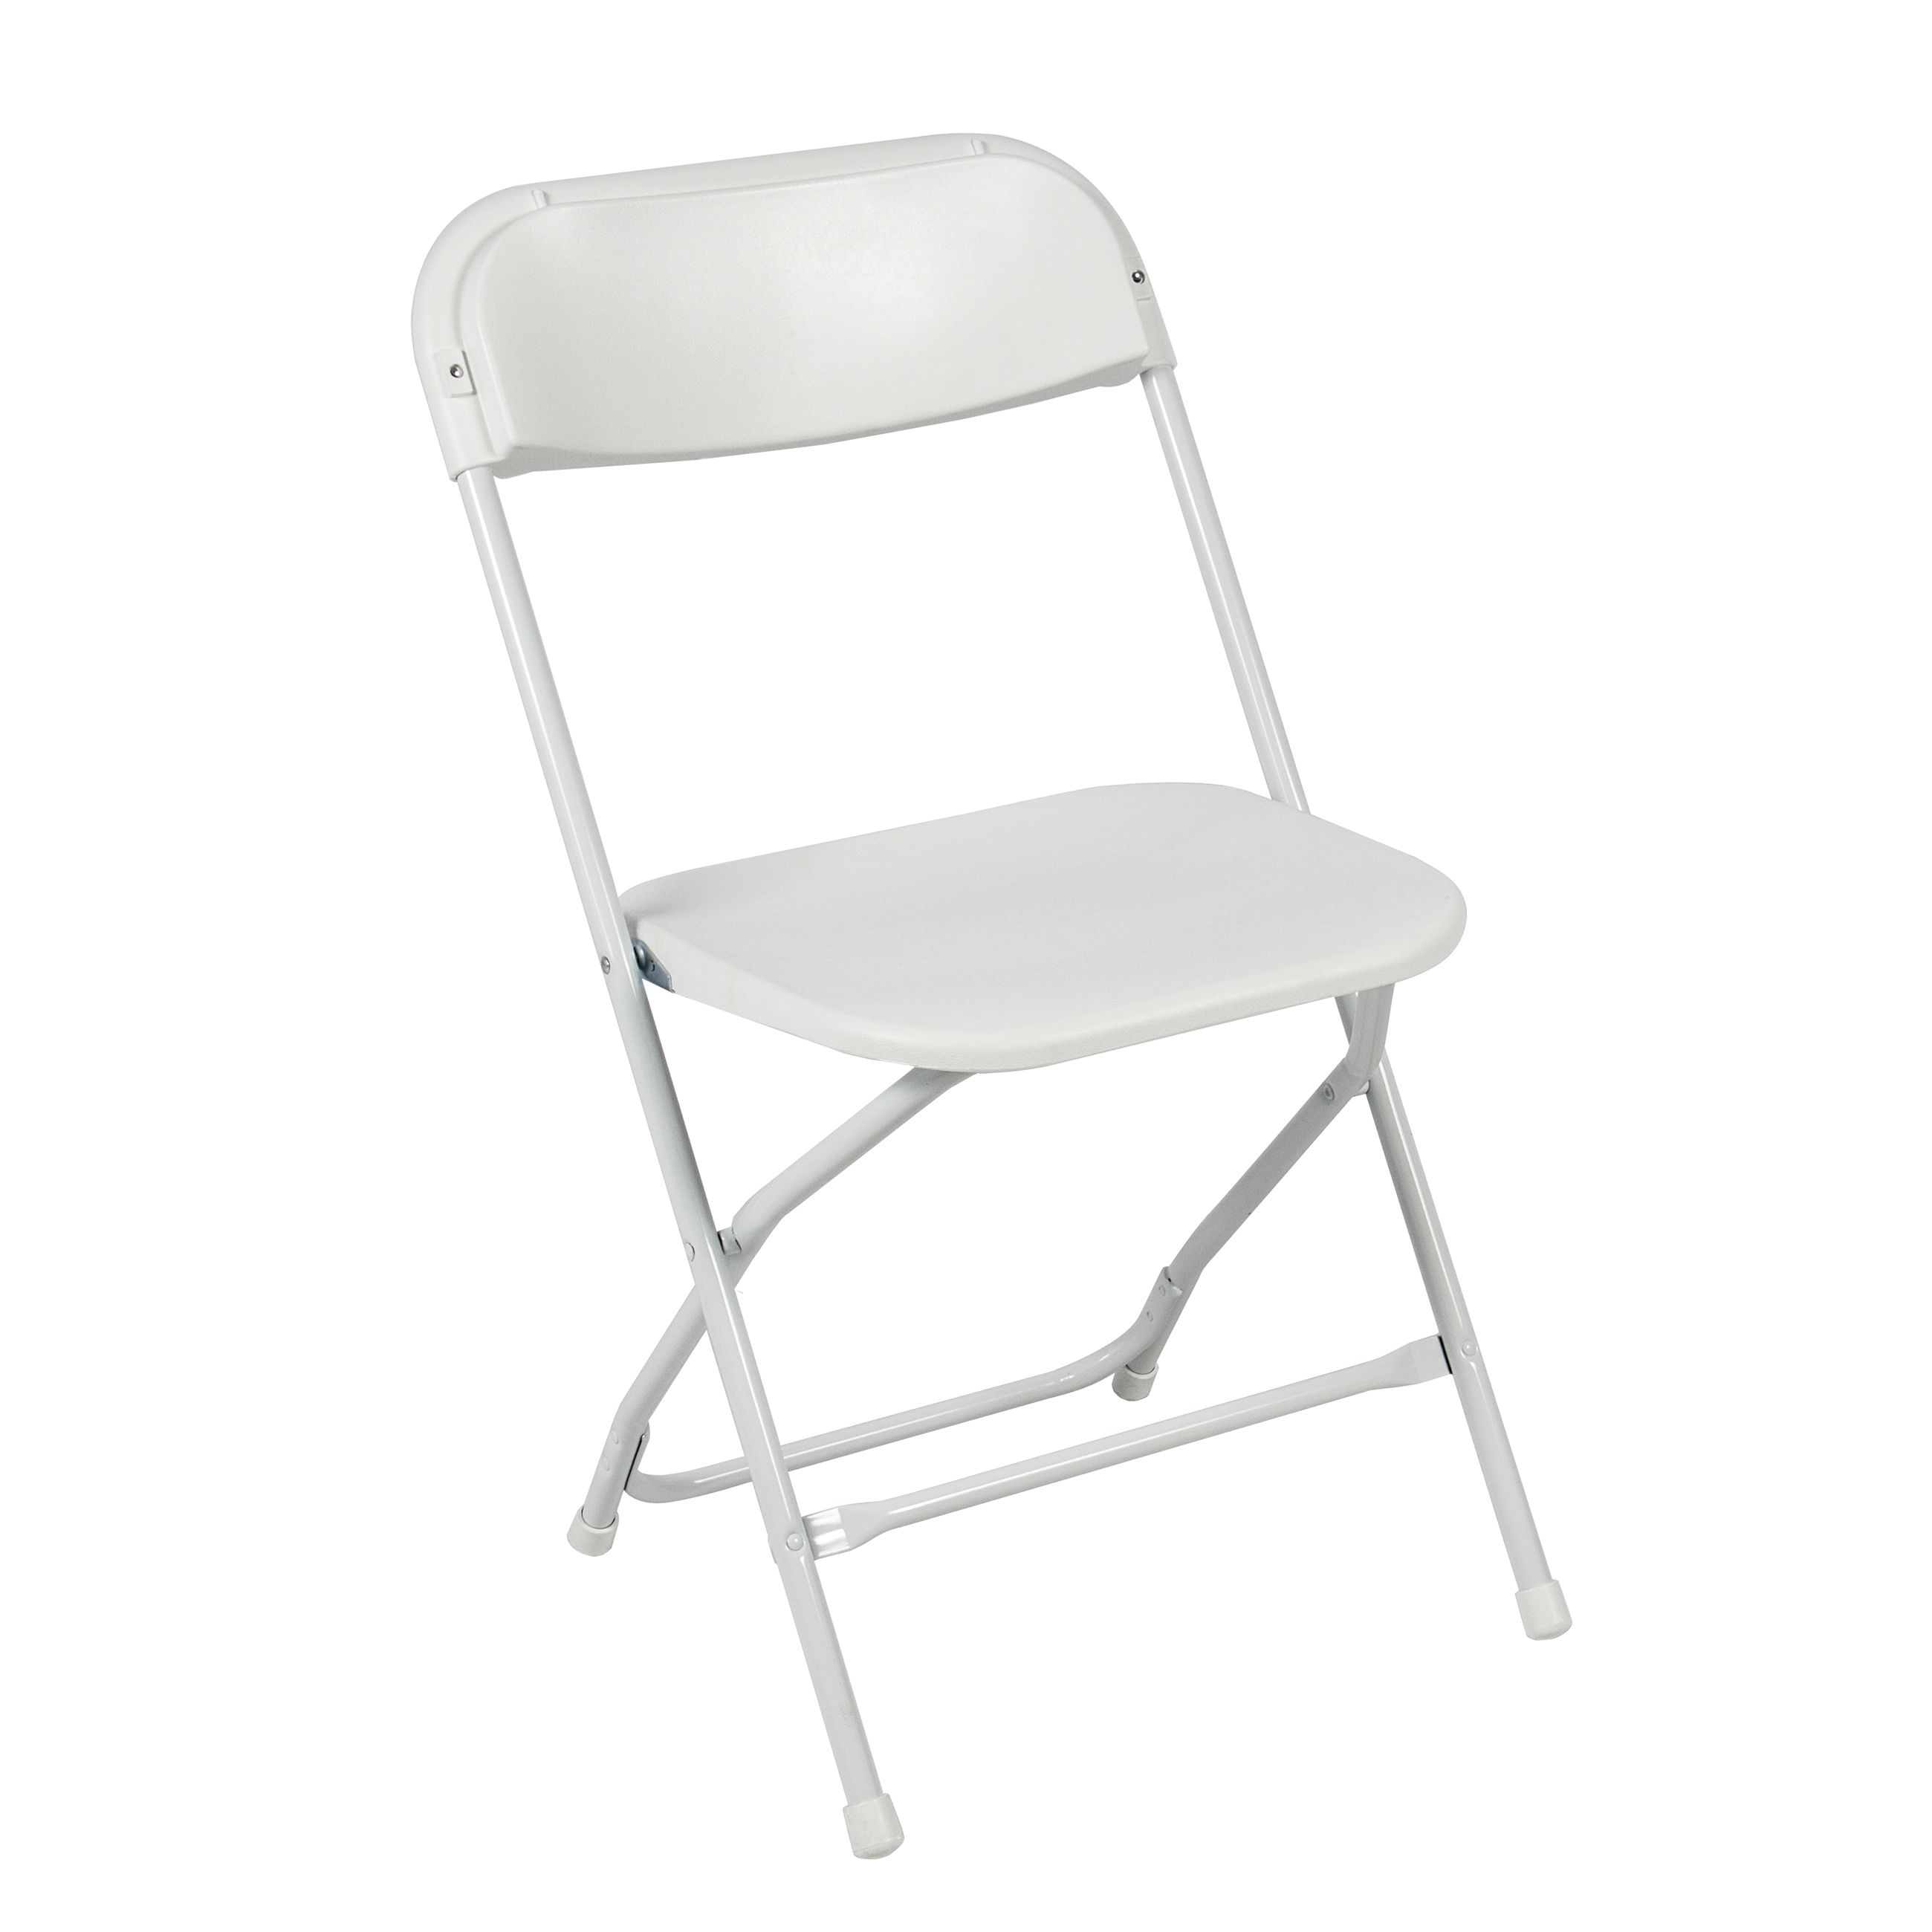 How To Clean White Plastic Folding Chairs From Rust Designalls Plastic Folding Chairs Best Folding Chairs Metal Folding Chairs